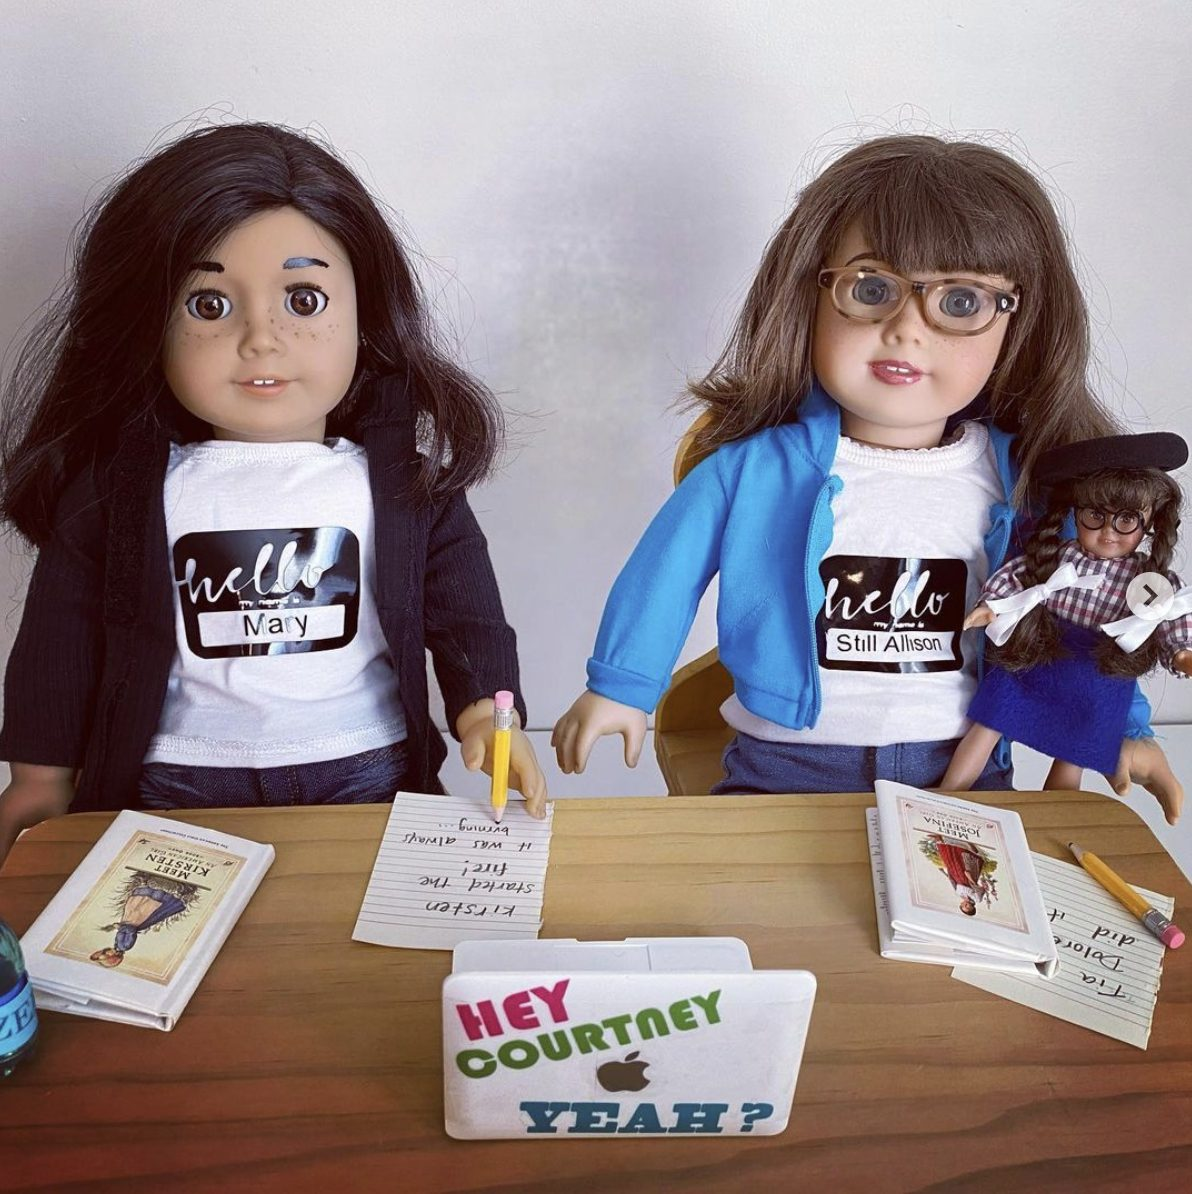 A fan crafted Mary and Allison as American Girl dolls